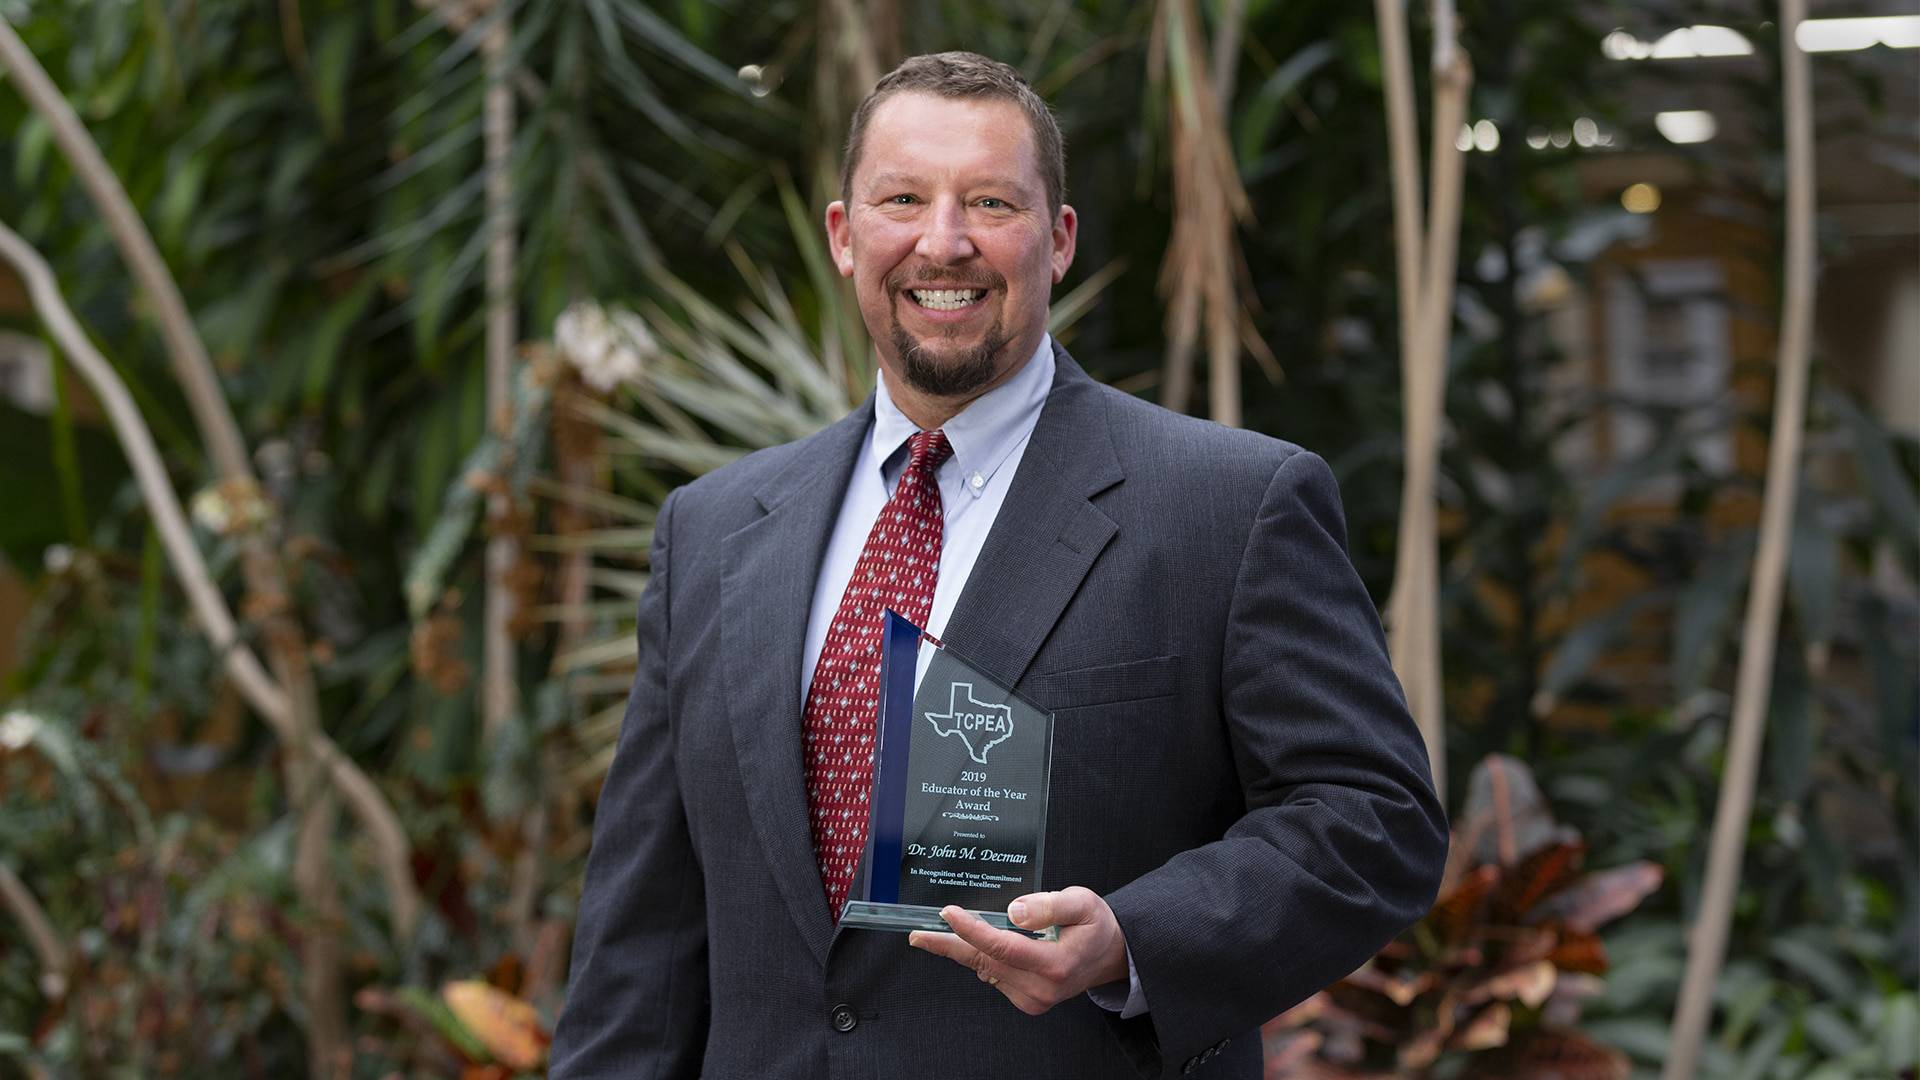 UHCL prof receives top educational administration honor